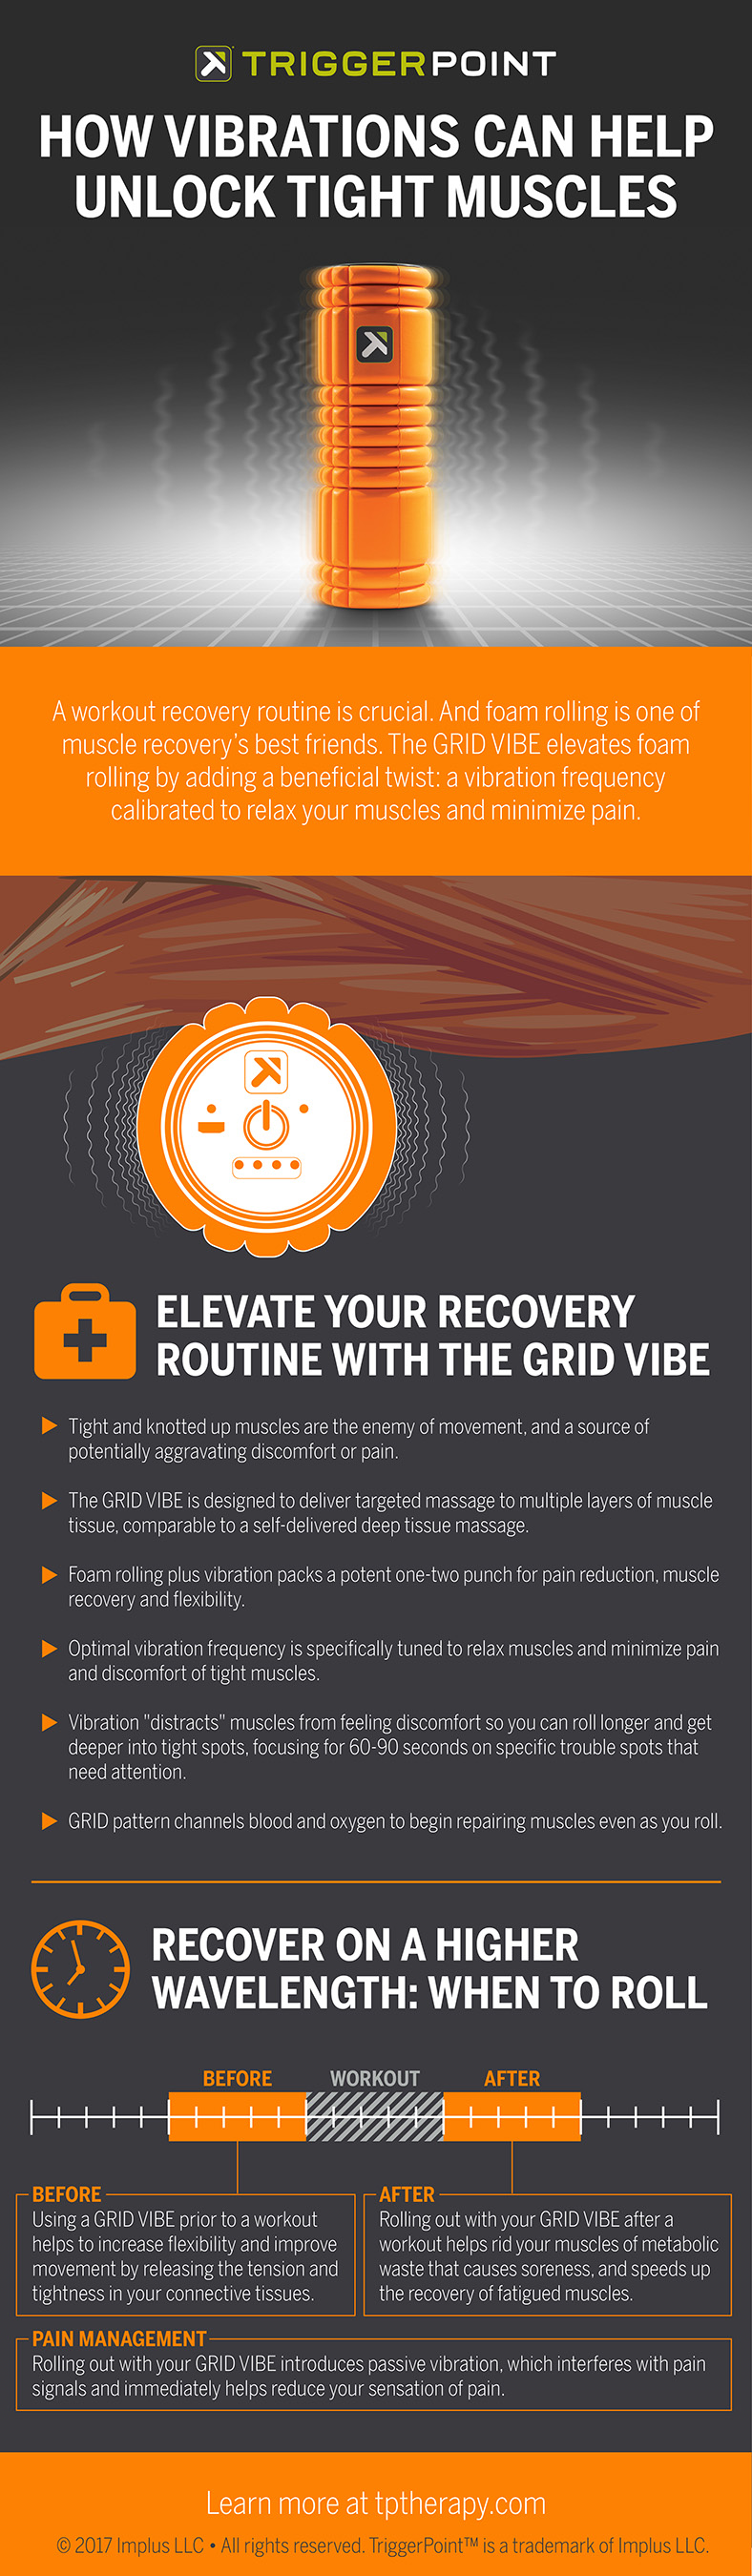 Infographic: Elevate Your Recovery